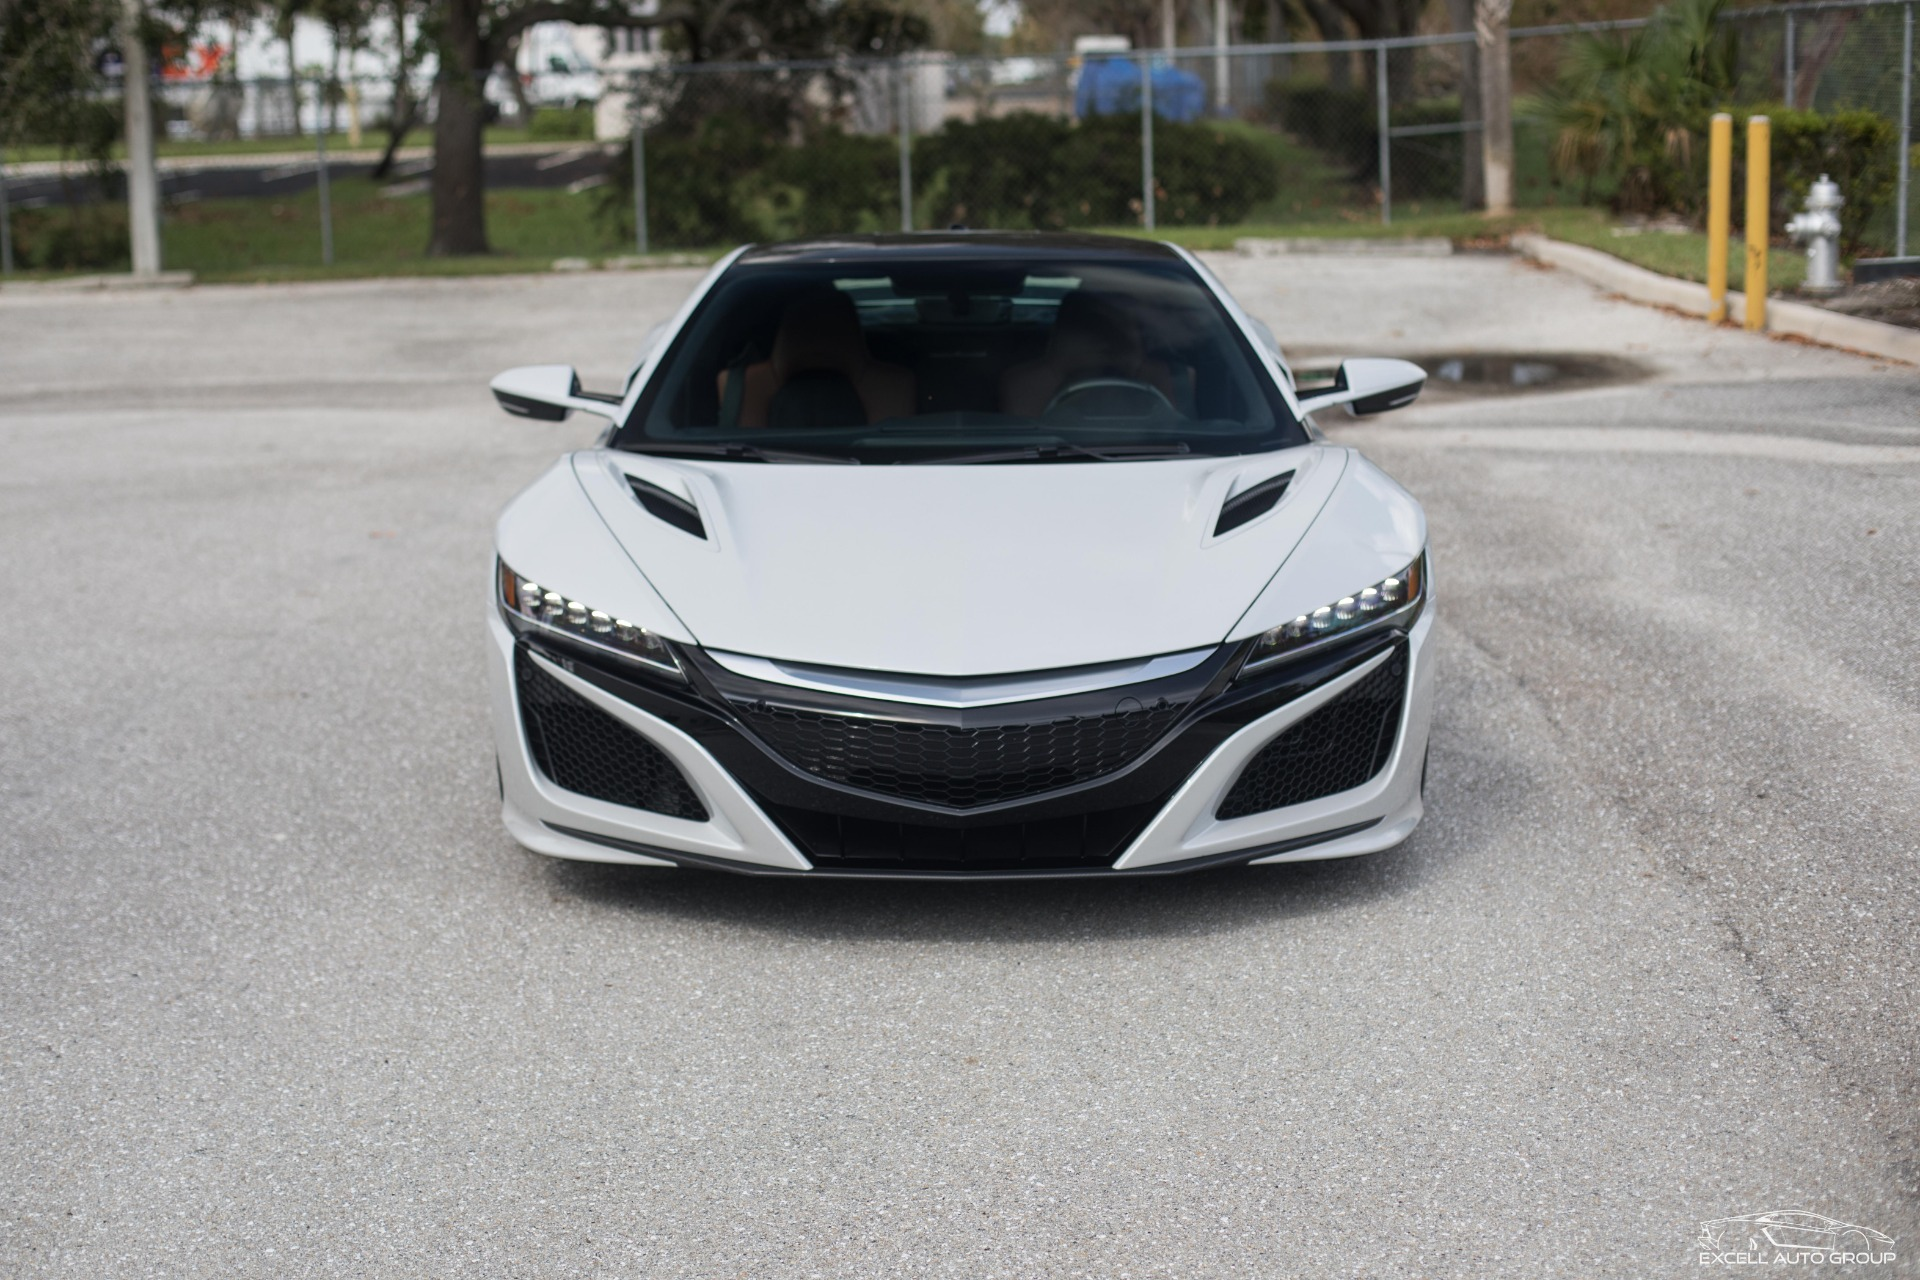 Casino White Acura Nsx For Sale In South Florida Supercar Report